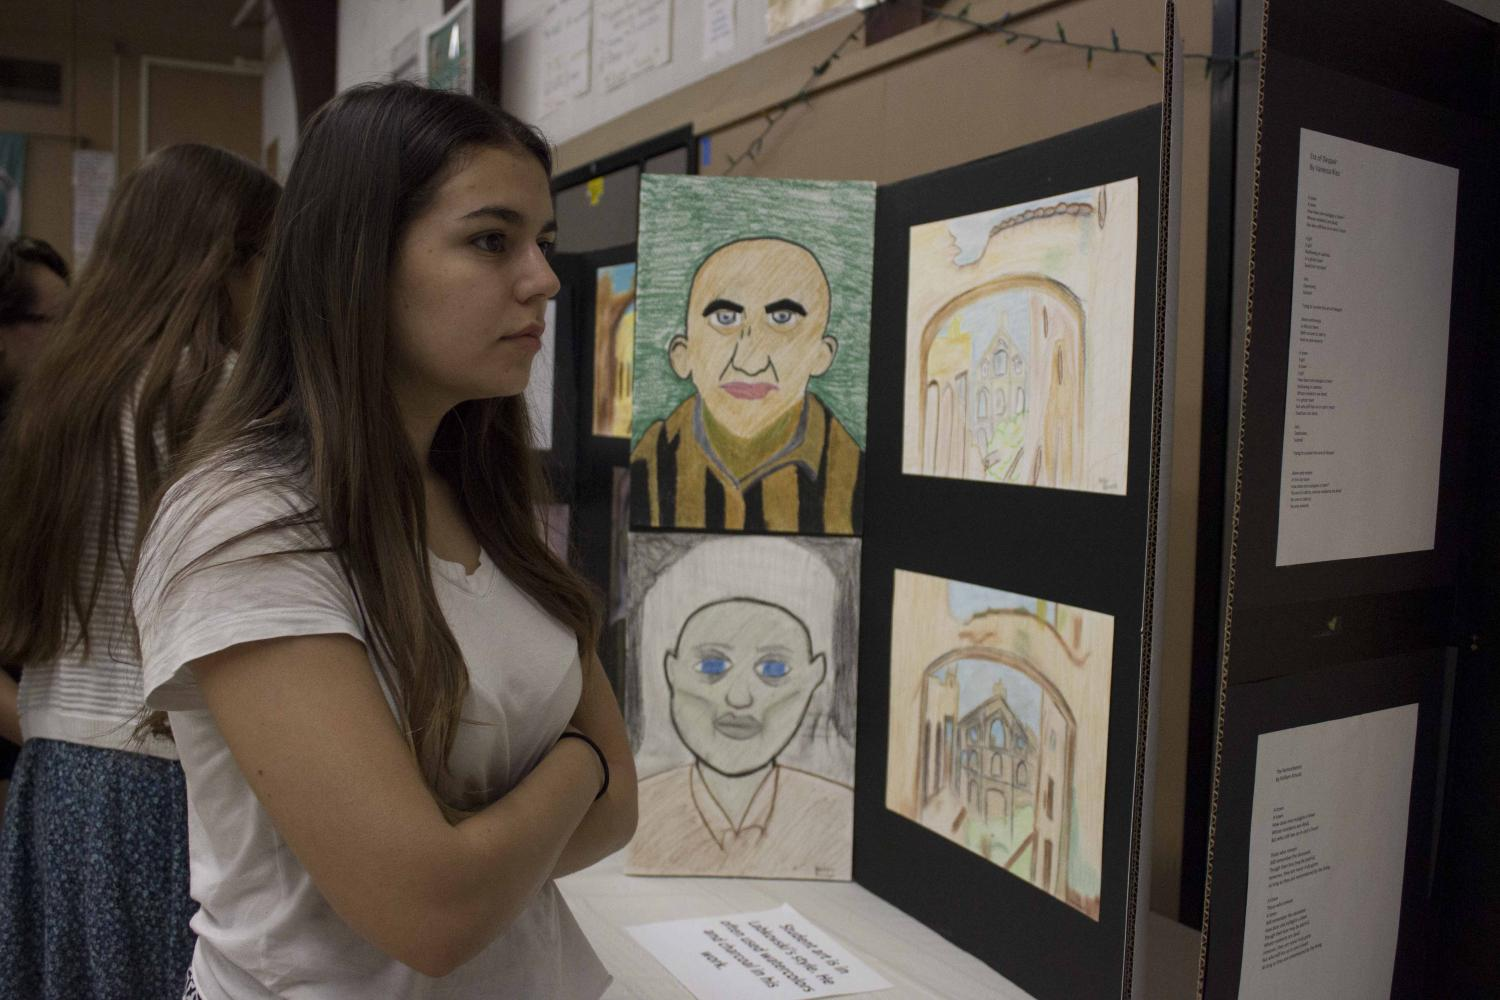 Senior Valarie Valdez admires the students recreation of Labkovsky's work